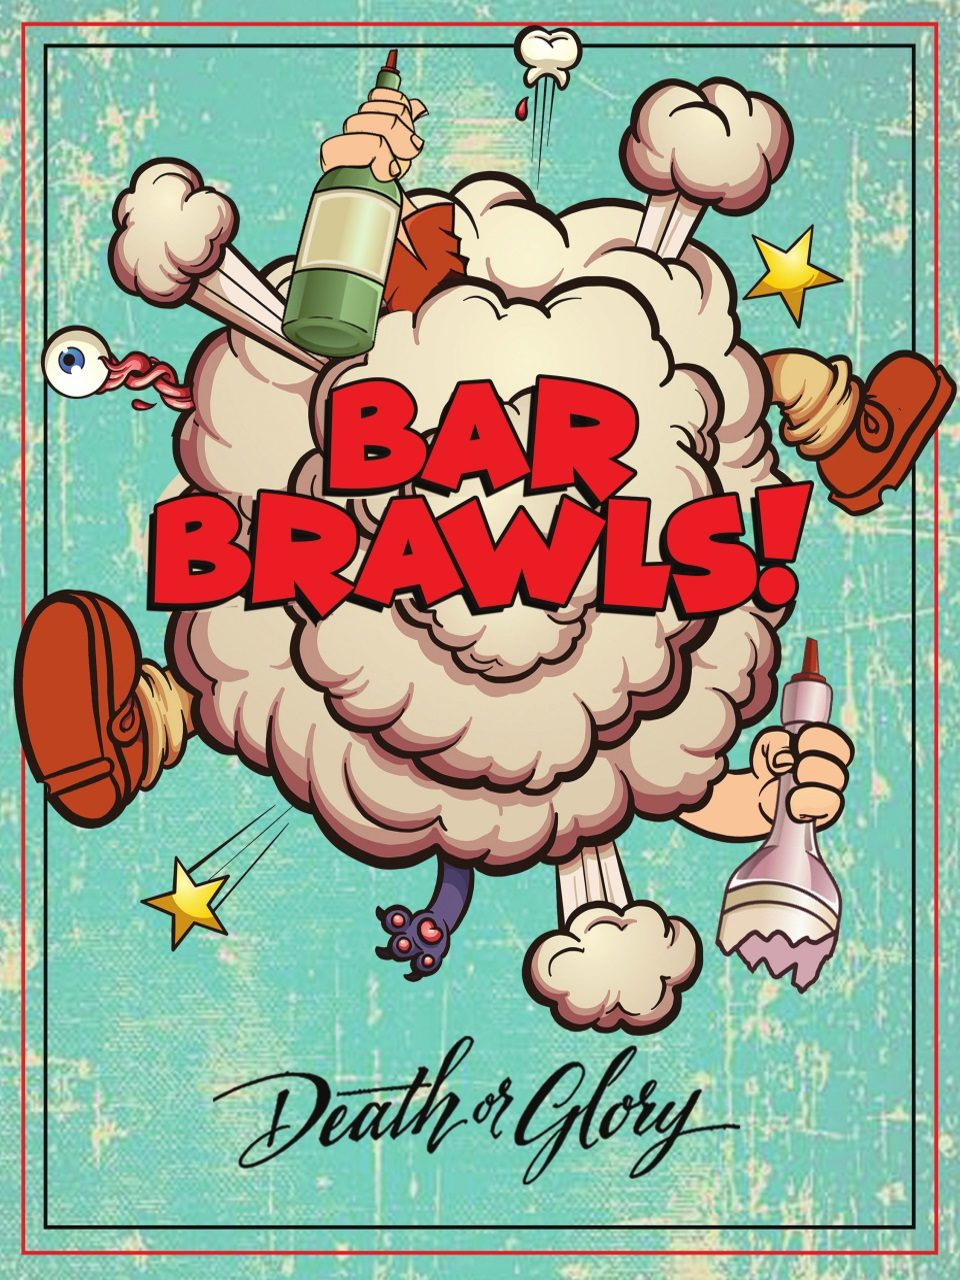 Image of the Bar Brawls poster